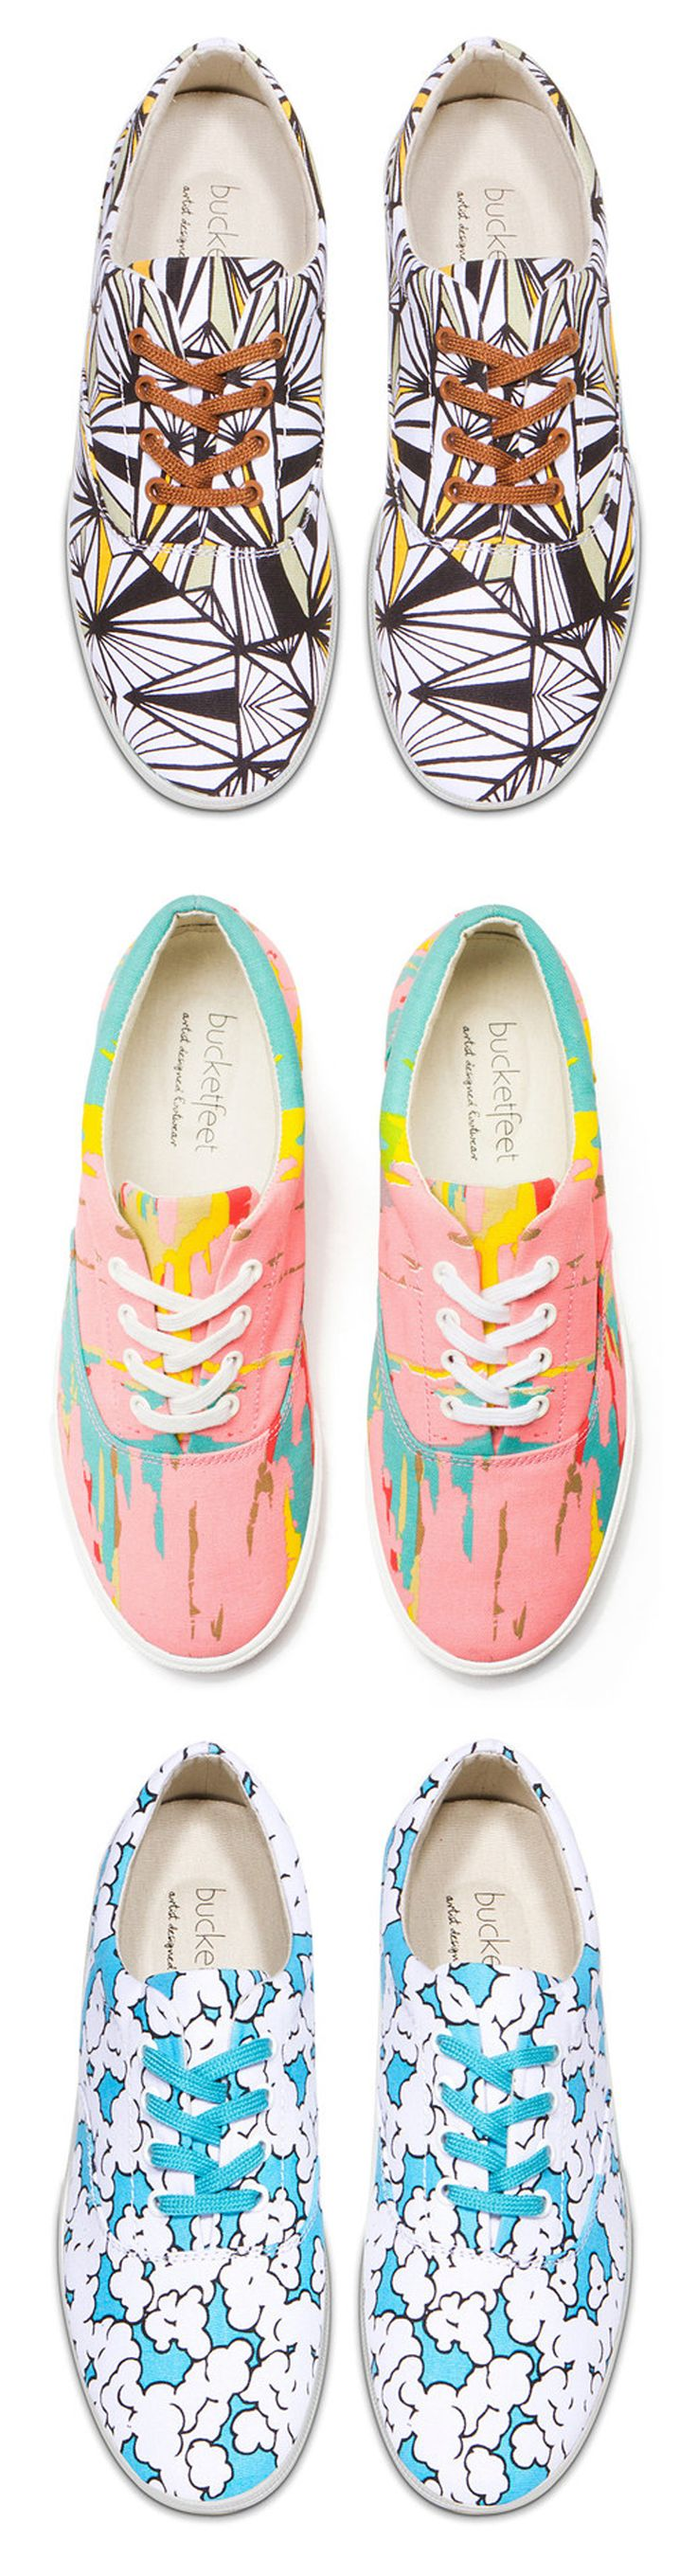 Fun, Patterned Sneakers! Bucketfeet Sneakers, with fabrics prints by various artists.